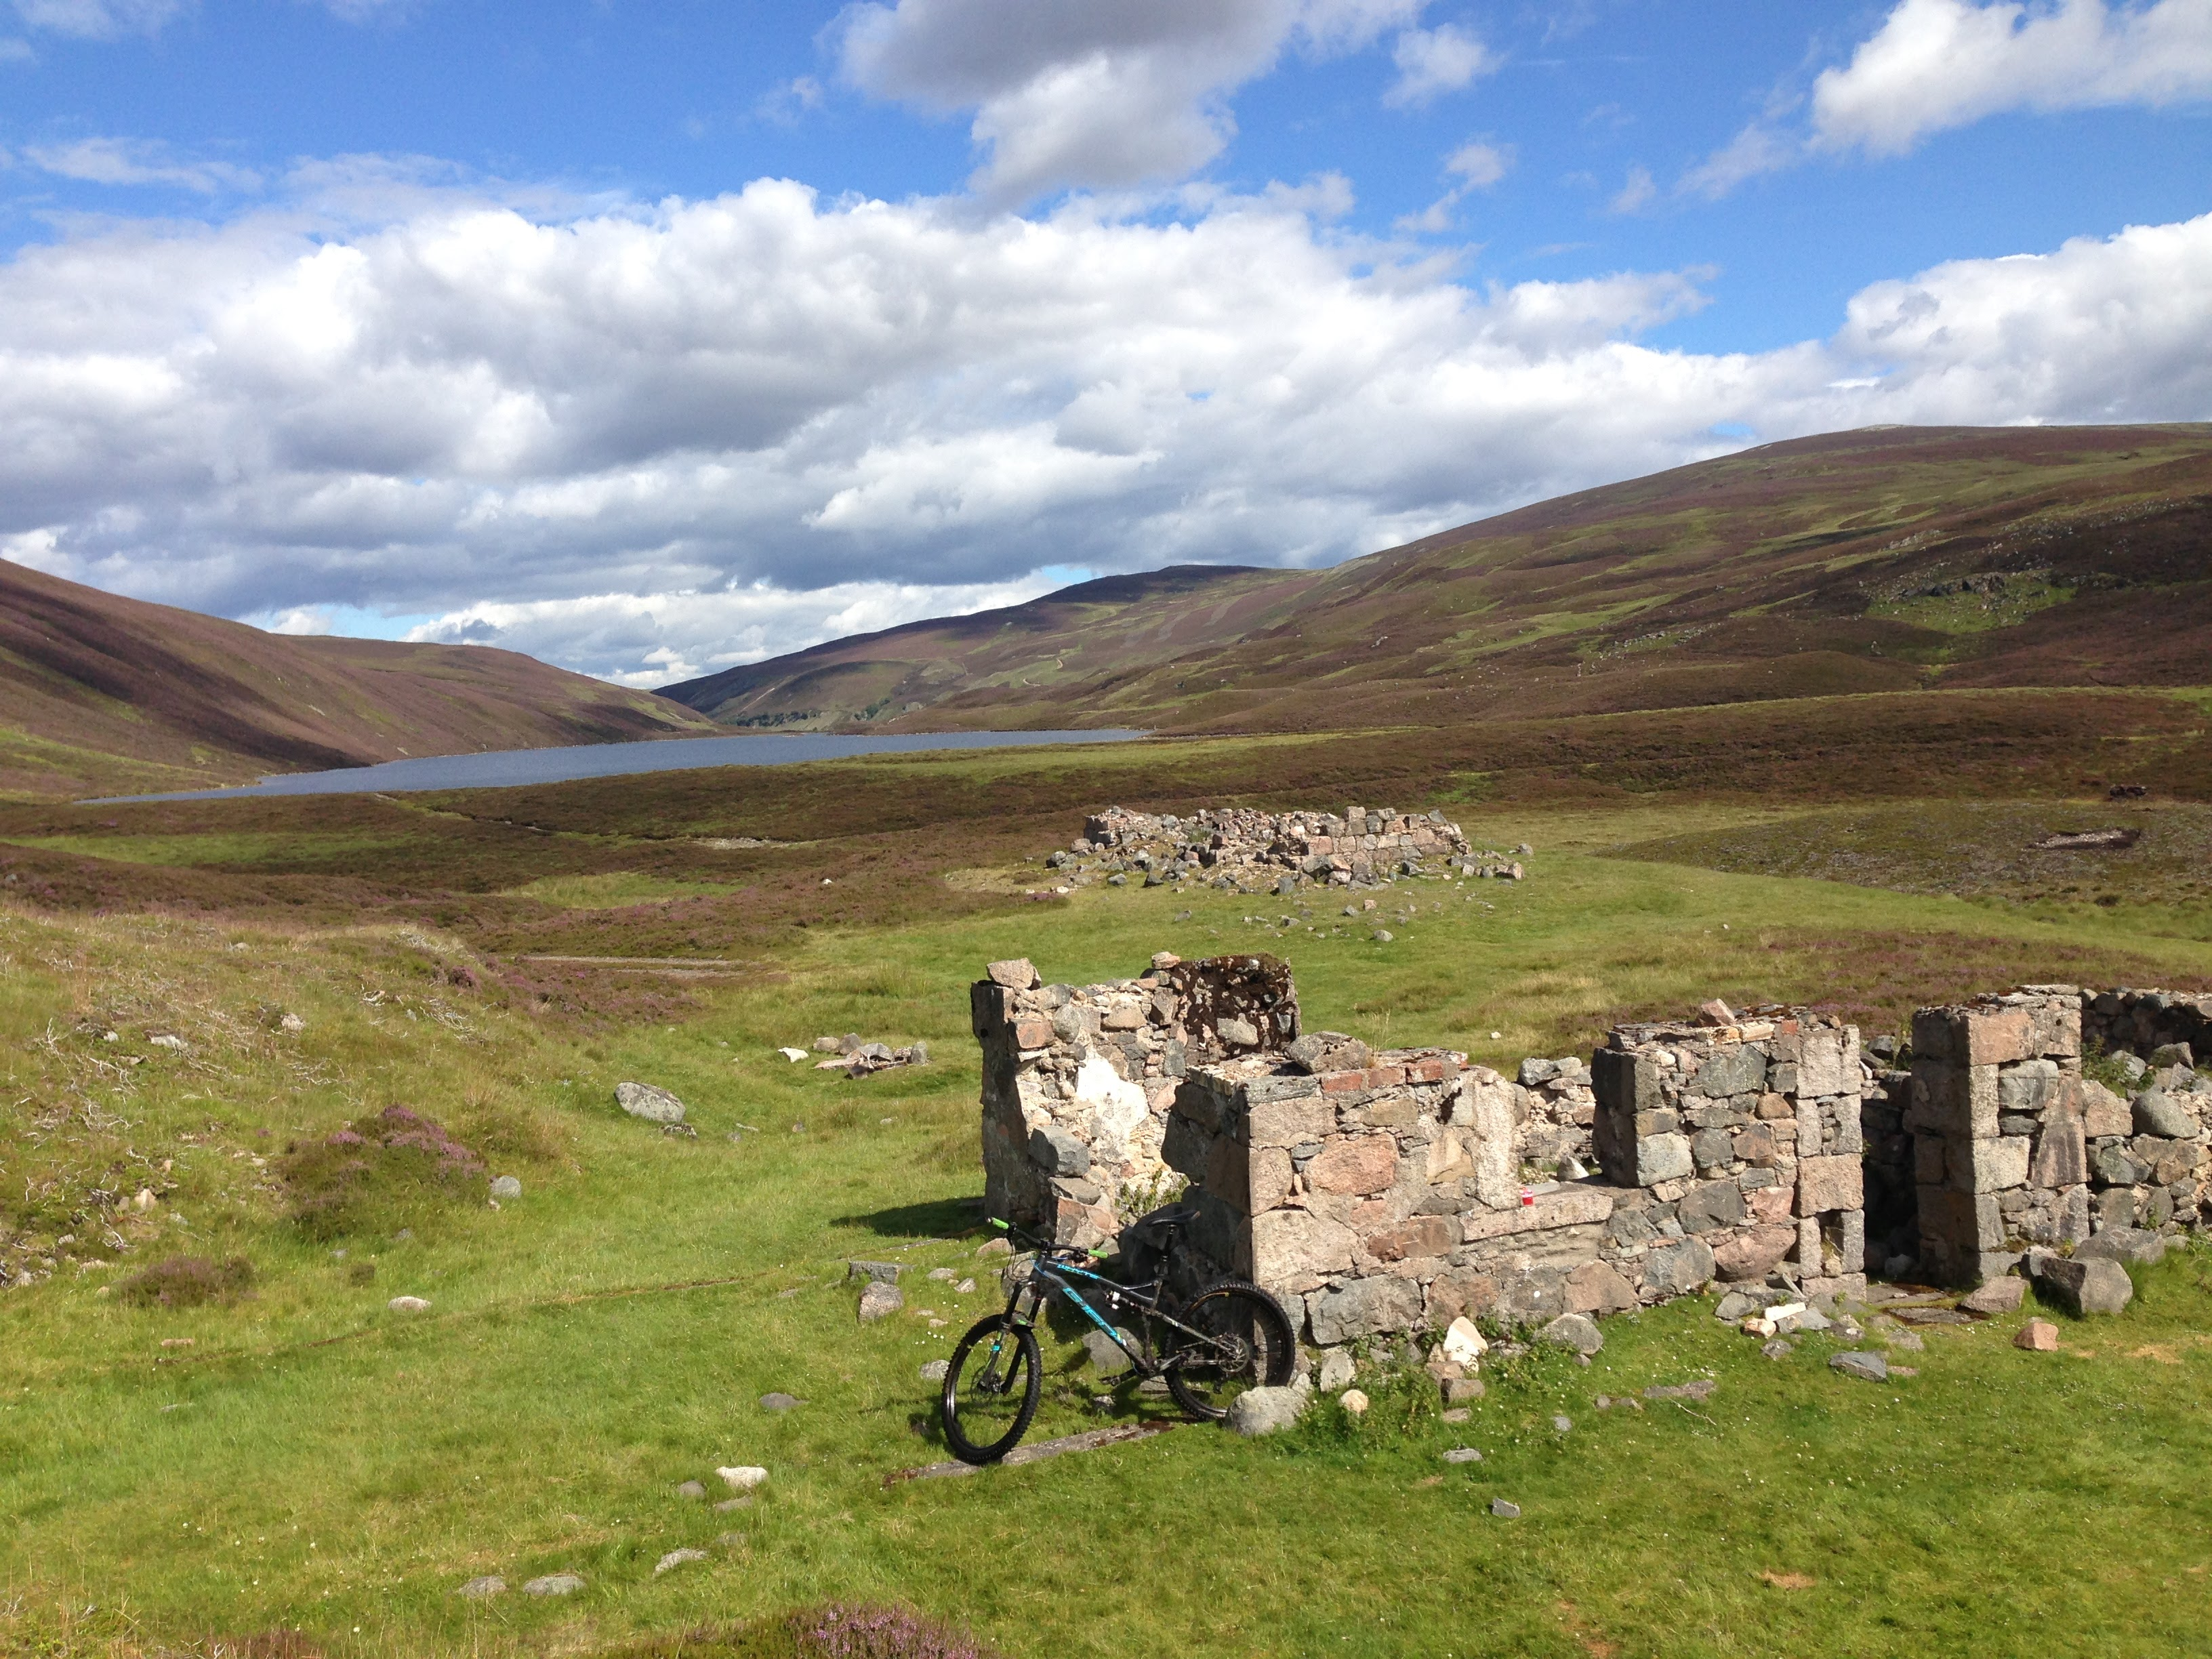 Guided rides to loch builg Donside, Aberdeenshire